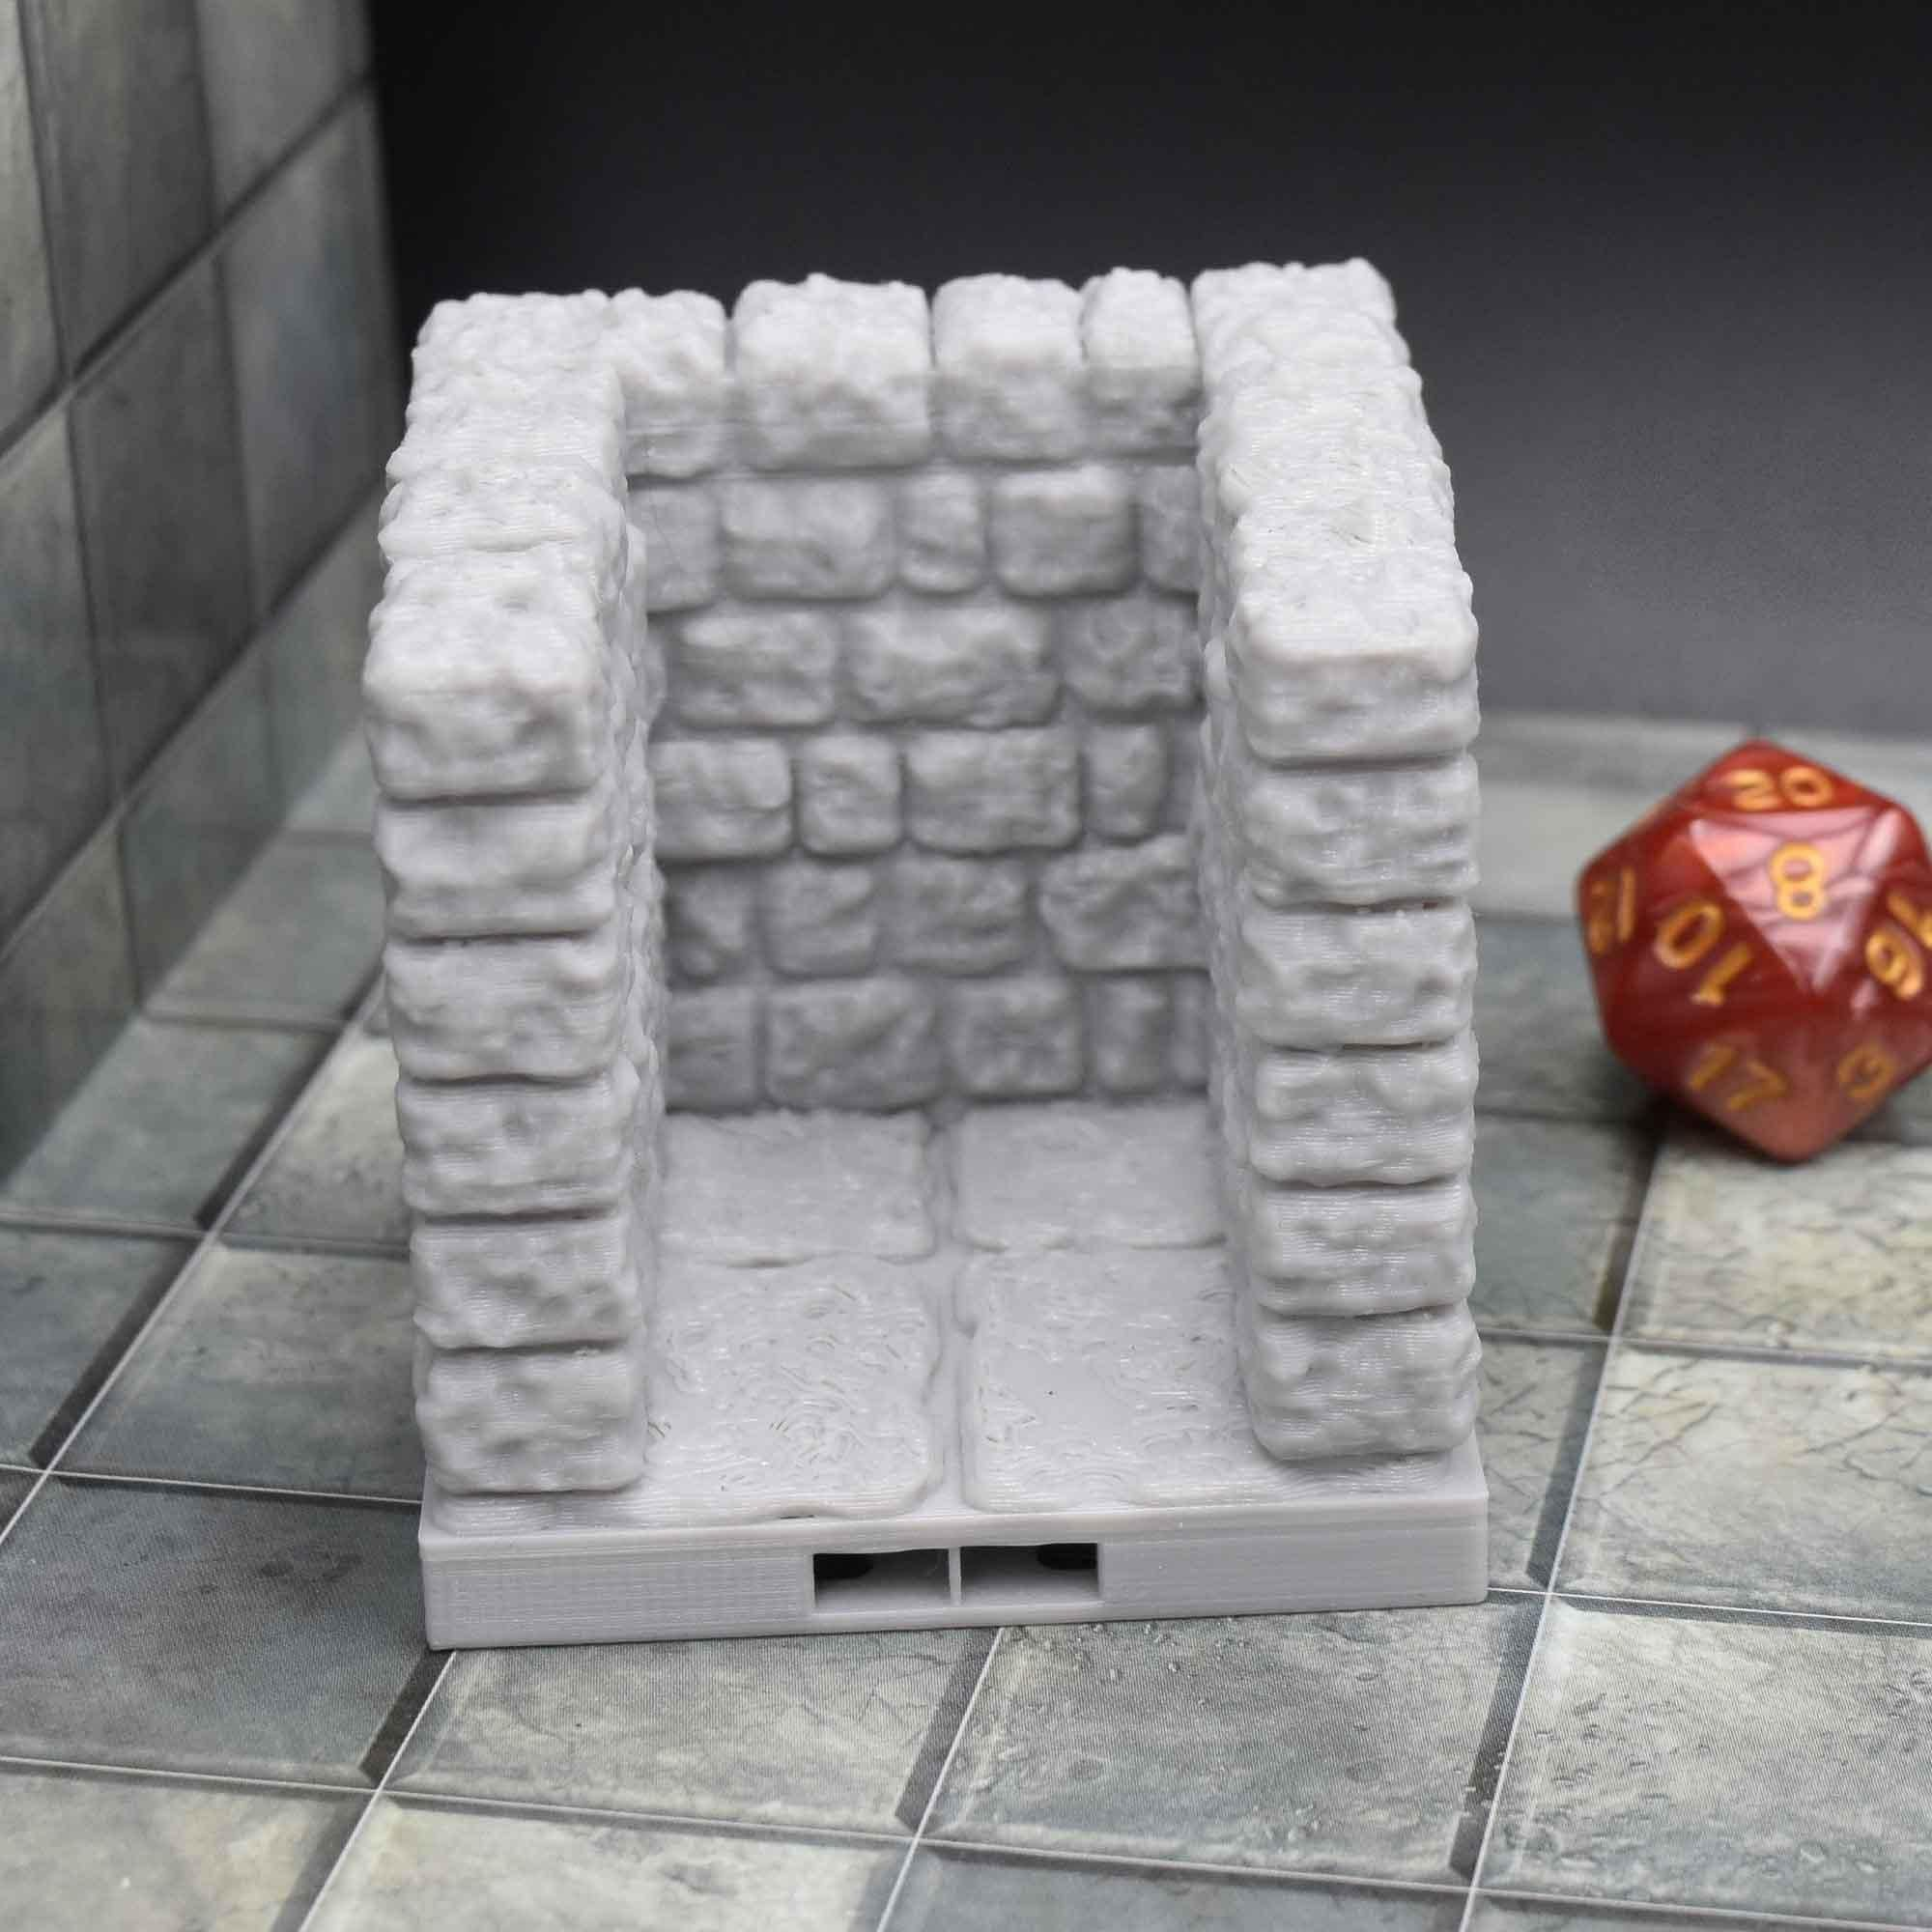 image regarding 3d Printable Dungeon Tiles titled Alcove - Dungeon Tiles by means of Dragonlock™ Our Solutions inside of 2019